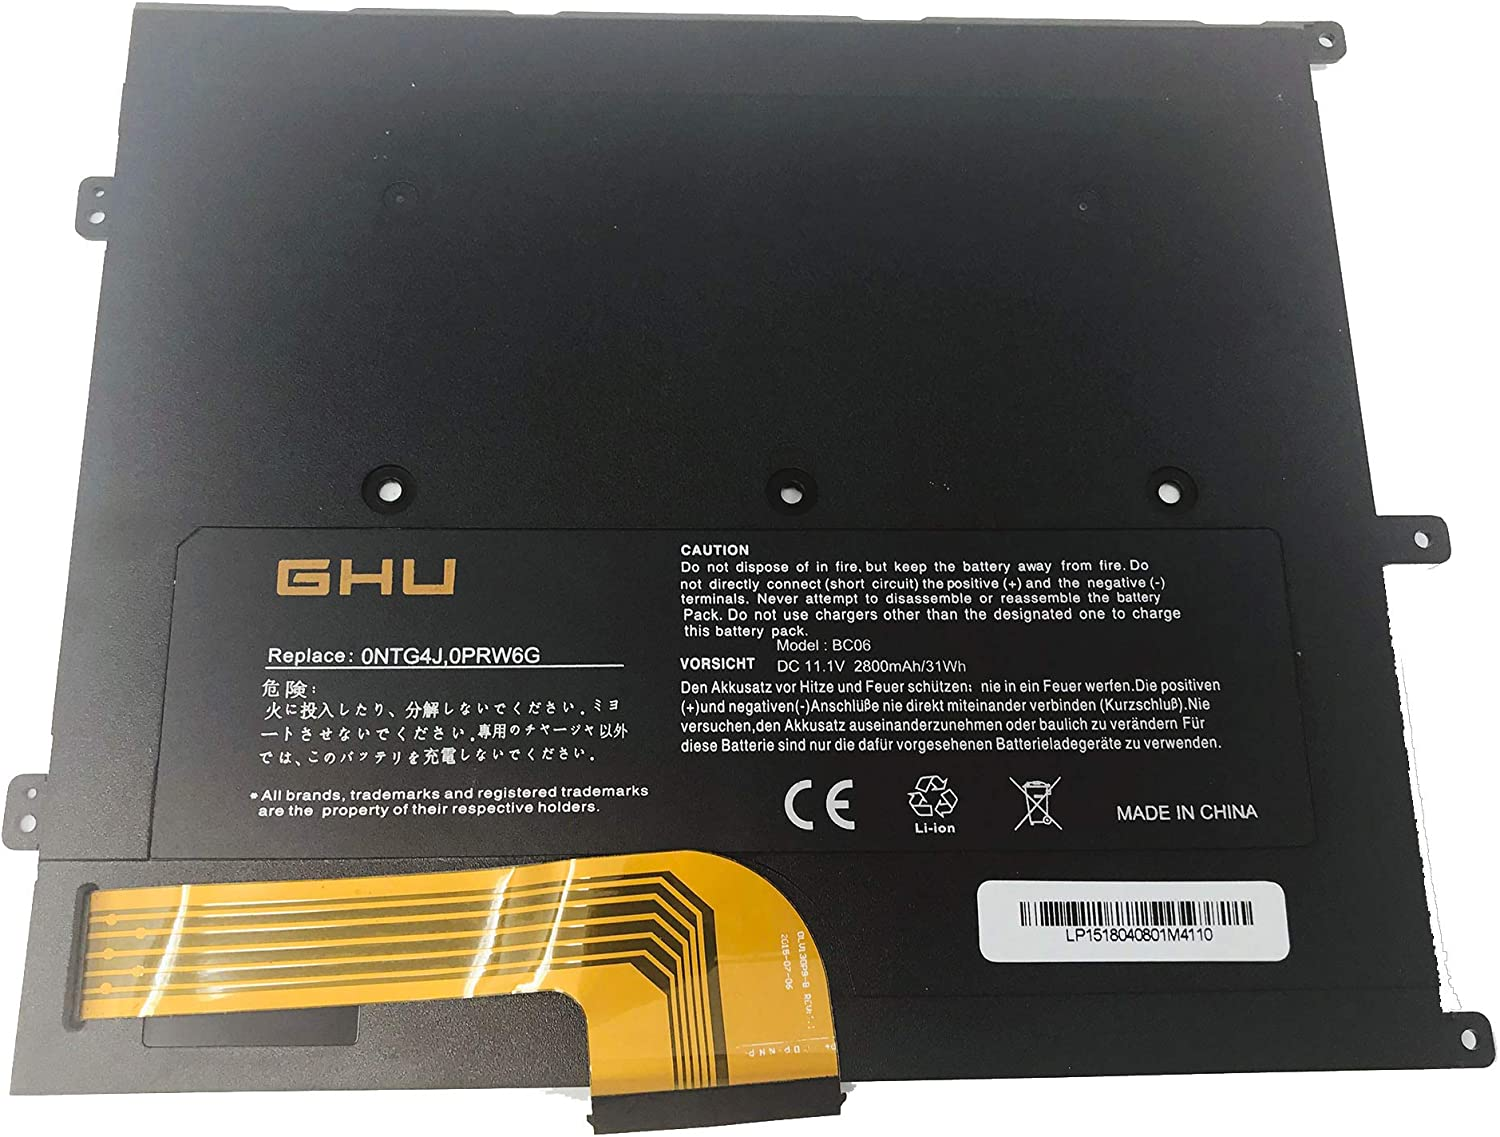 GHU Battery Replacement for T1G6P 449TX 0NTG4J PRW6G 0NTG4J 0PRW6G 0449tx Compatible with Dell Vostro V13 V130 V1300 V13Z